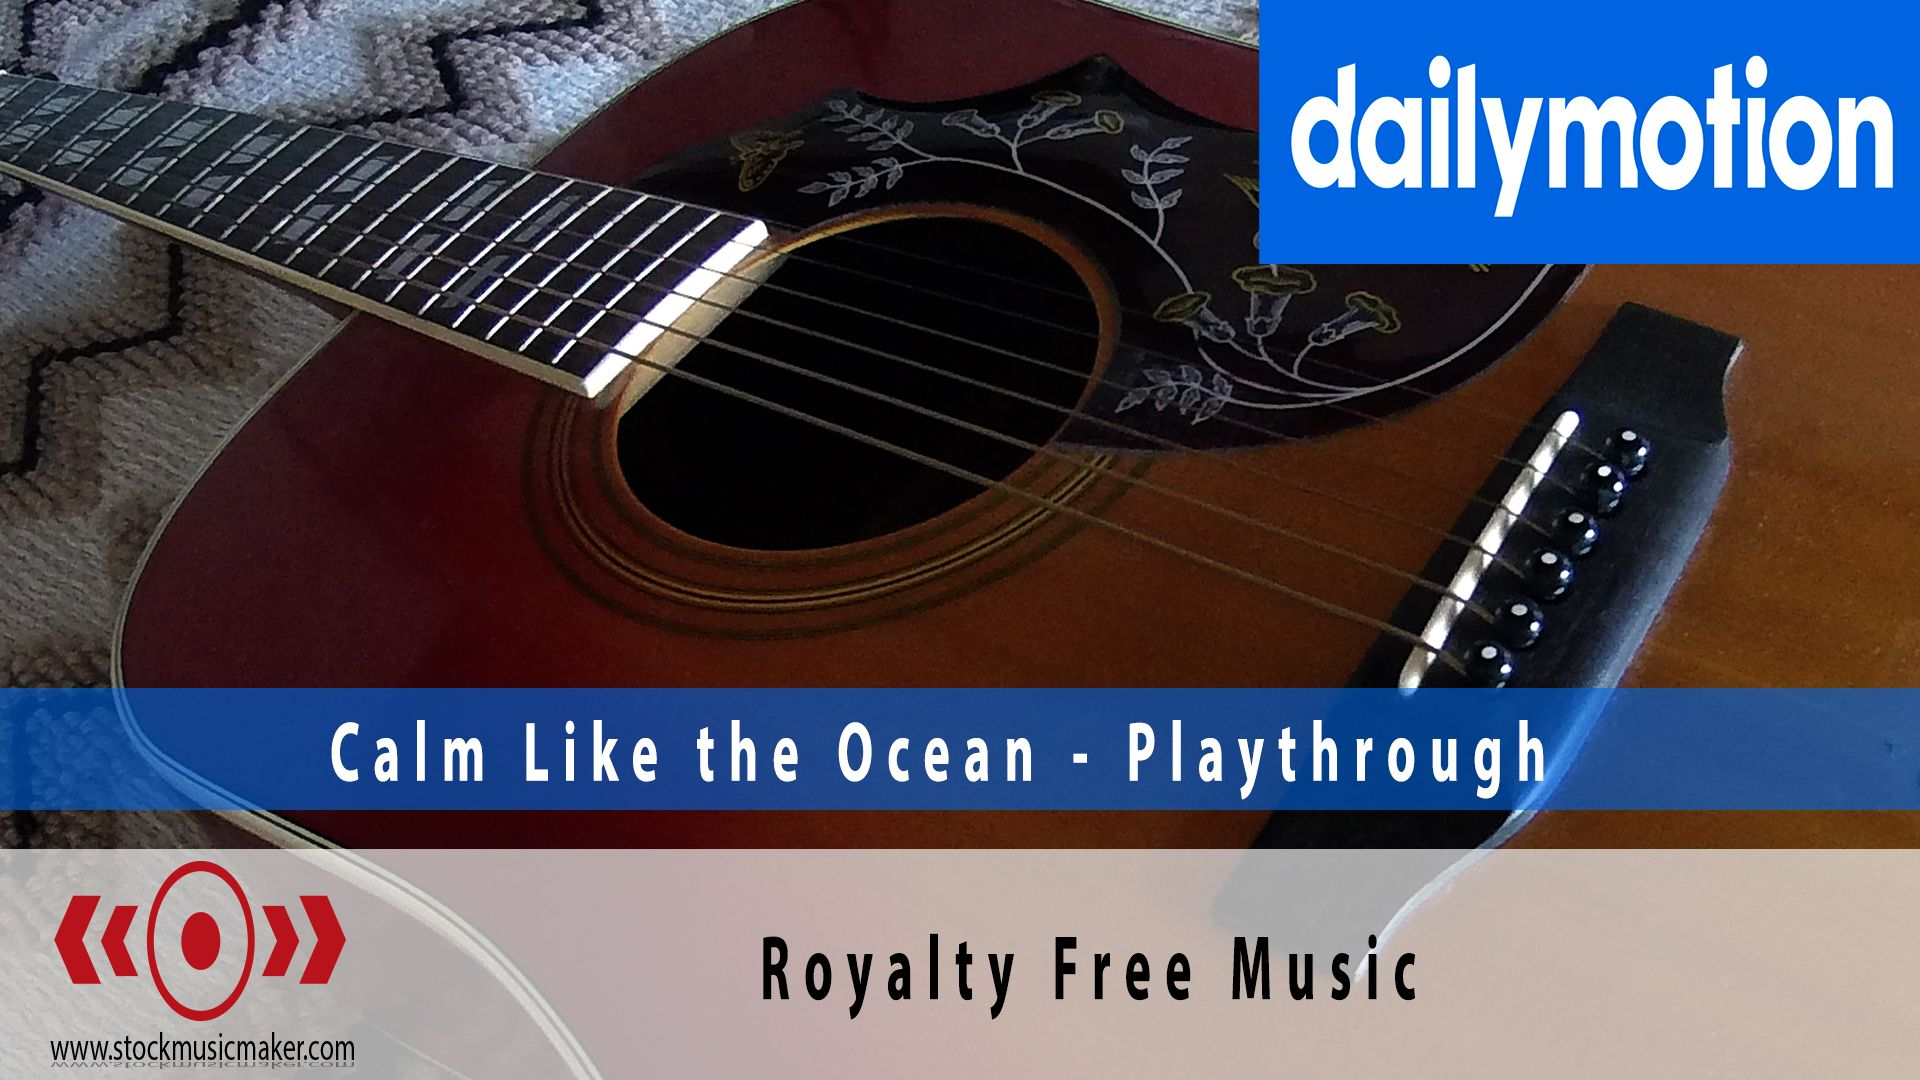 So from now on, it's DailyMotion. A place where you can find videos of me plyaing guitar through my stock music library. If you like what you see, please share. Thanks